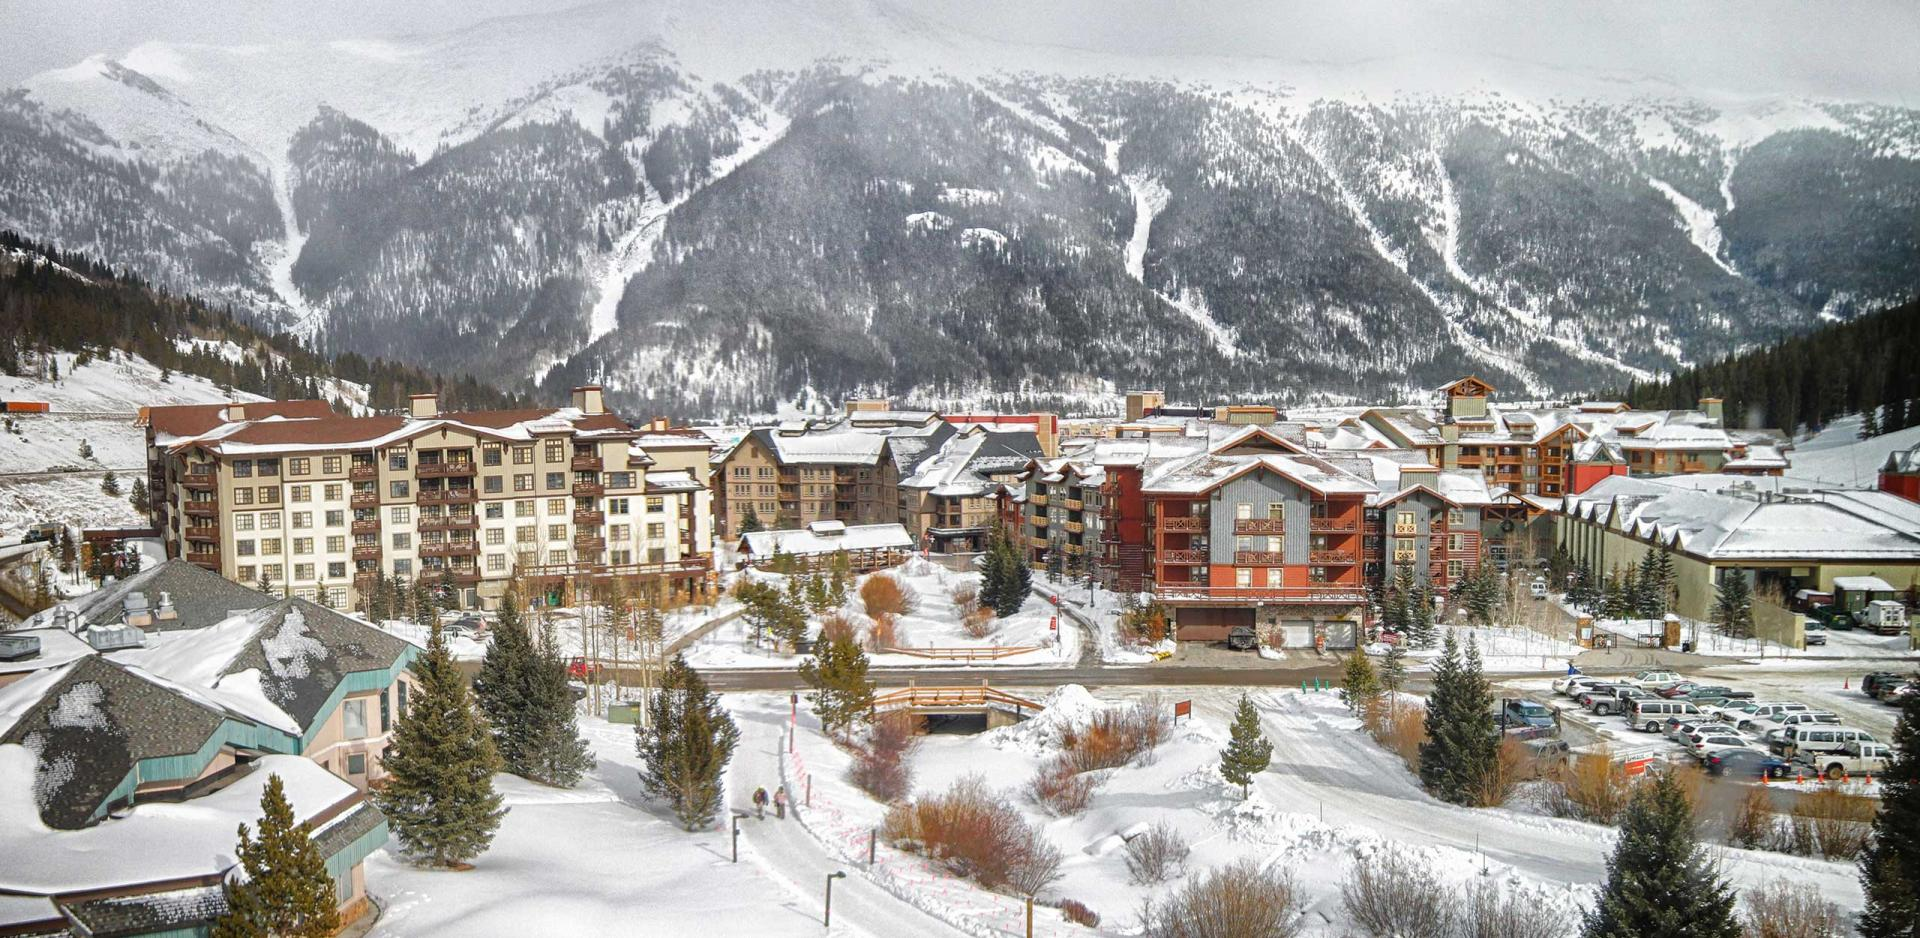 lodging - Colorado Christmas Vacation